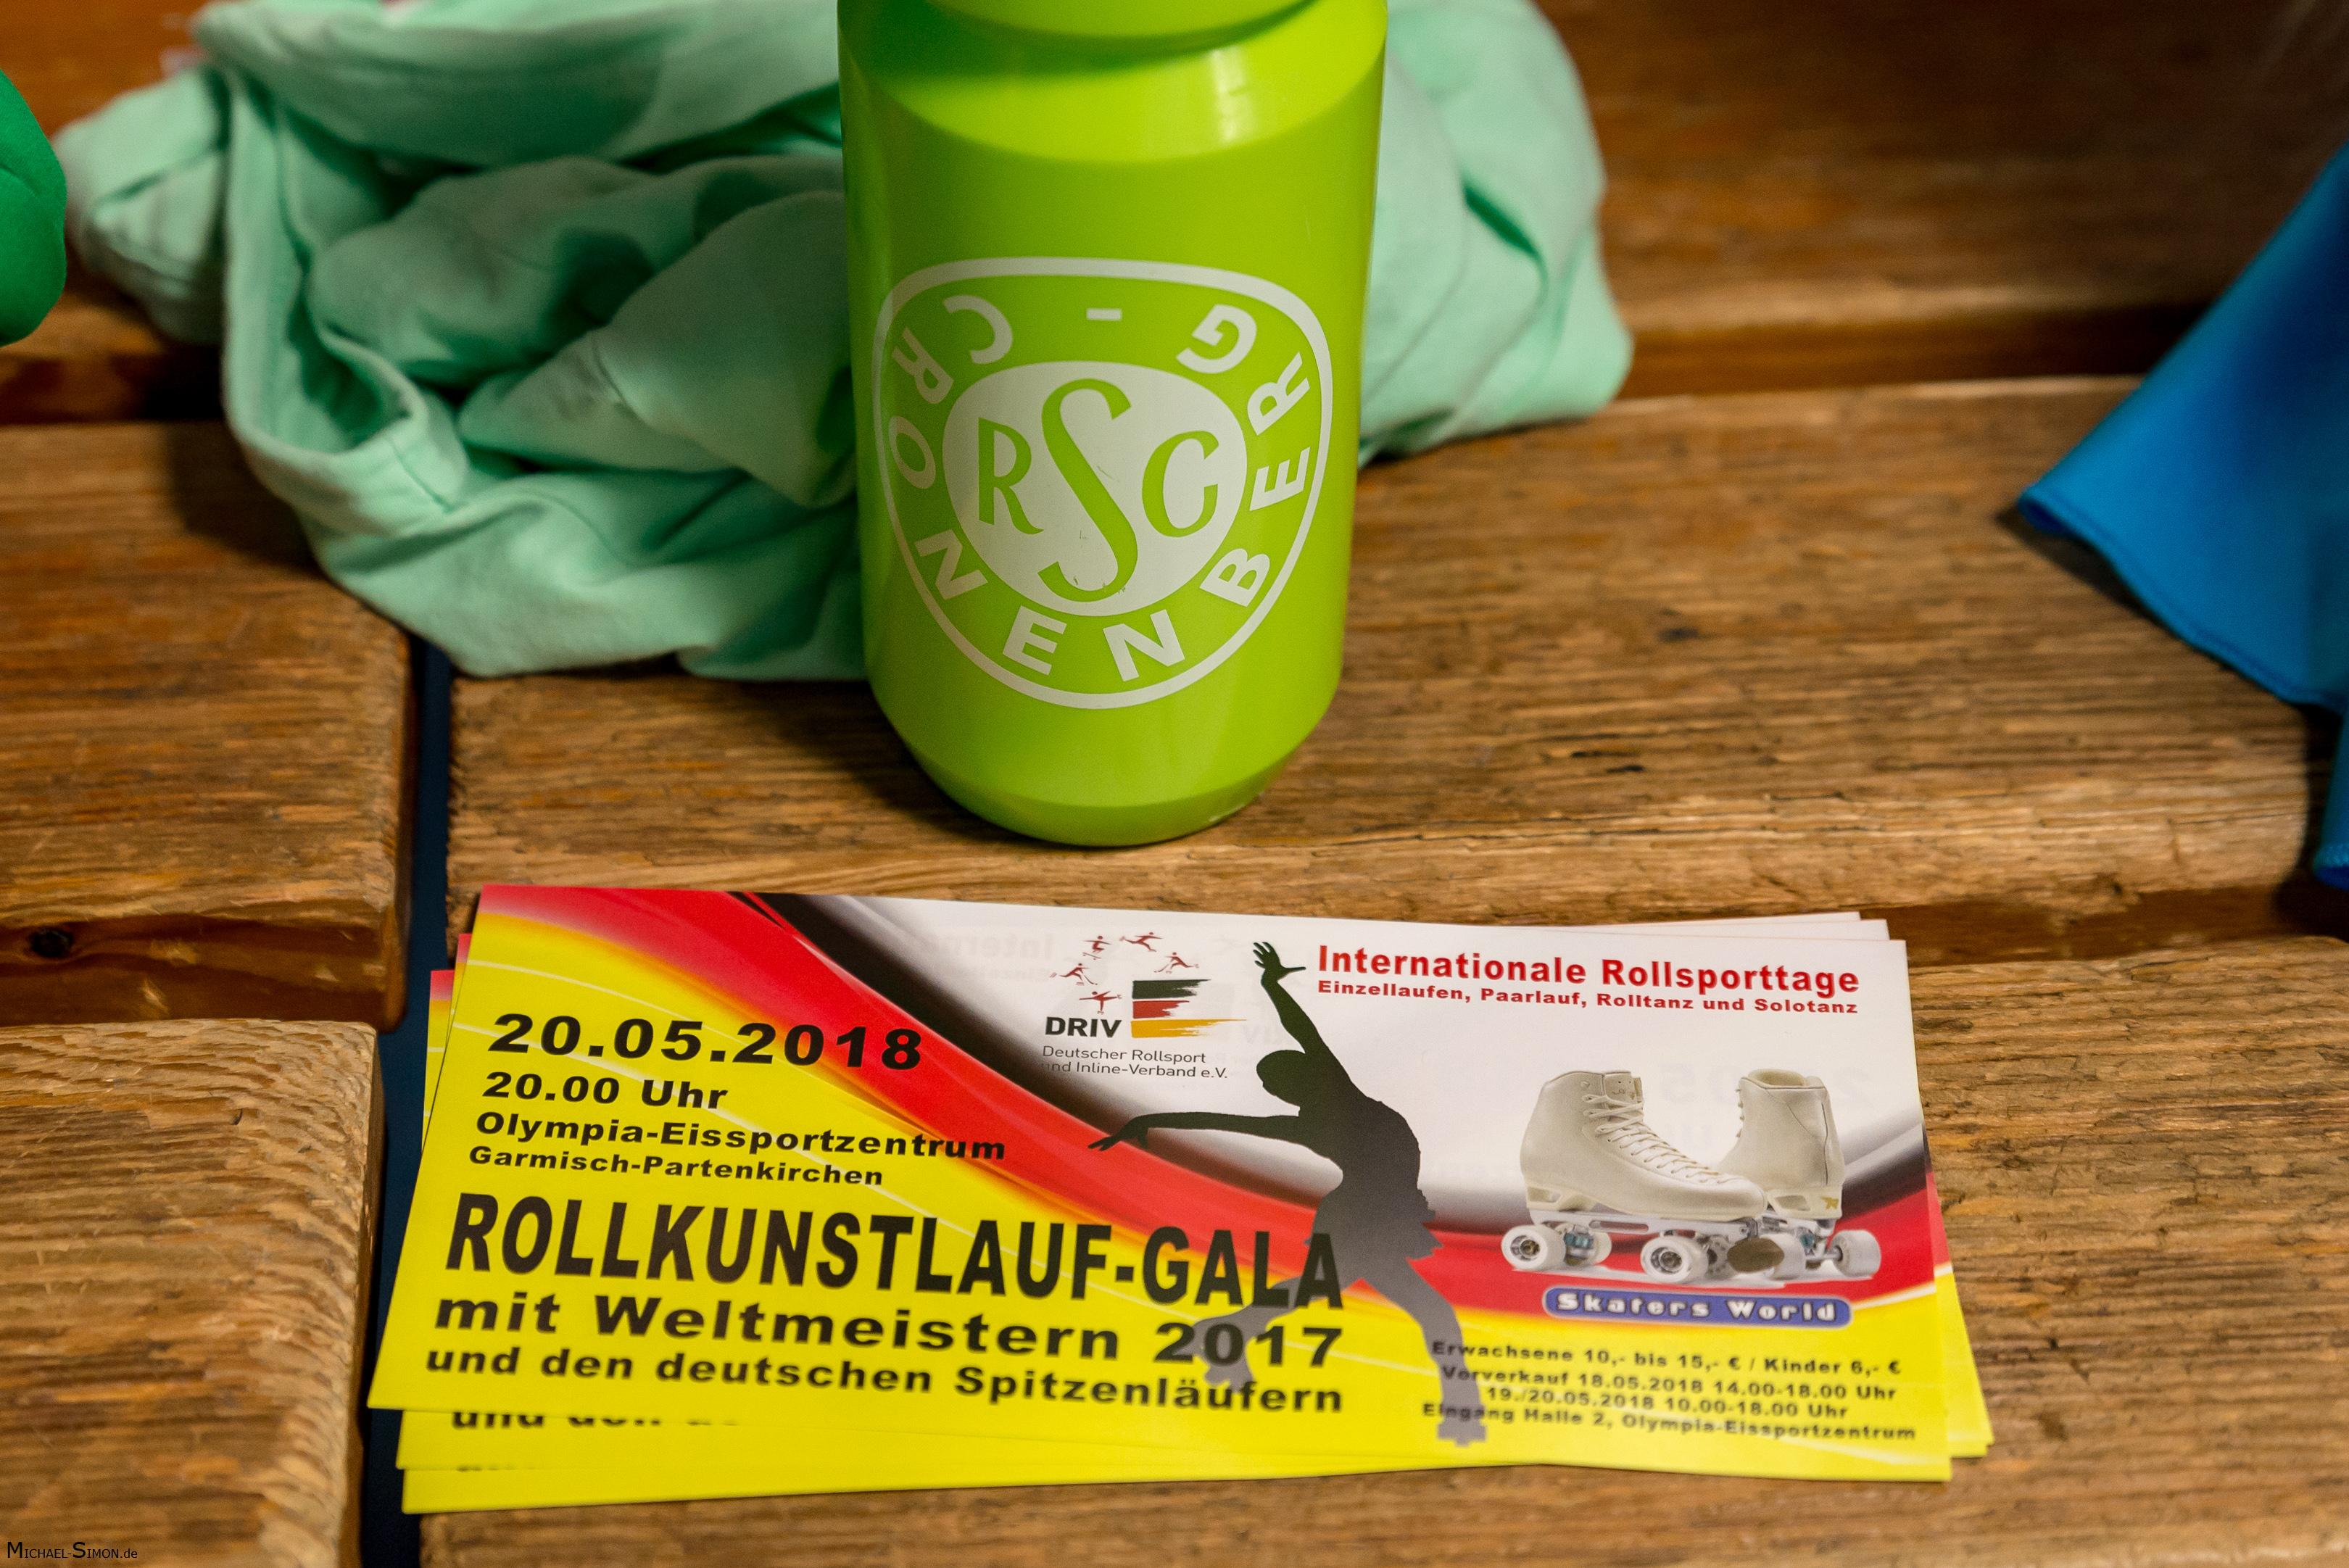 Internationale Rollsporttage 2018 Garmisch-Partenkirchen